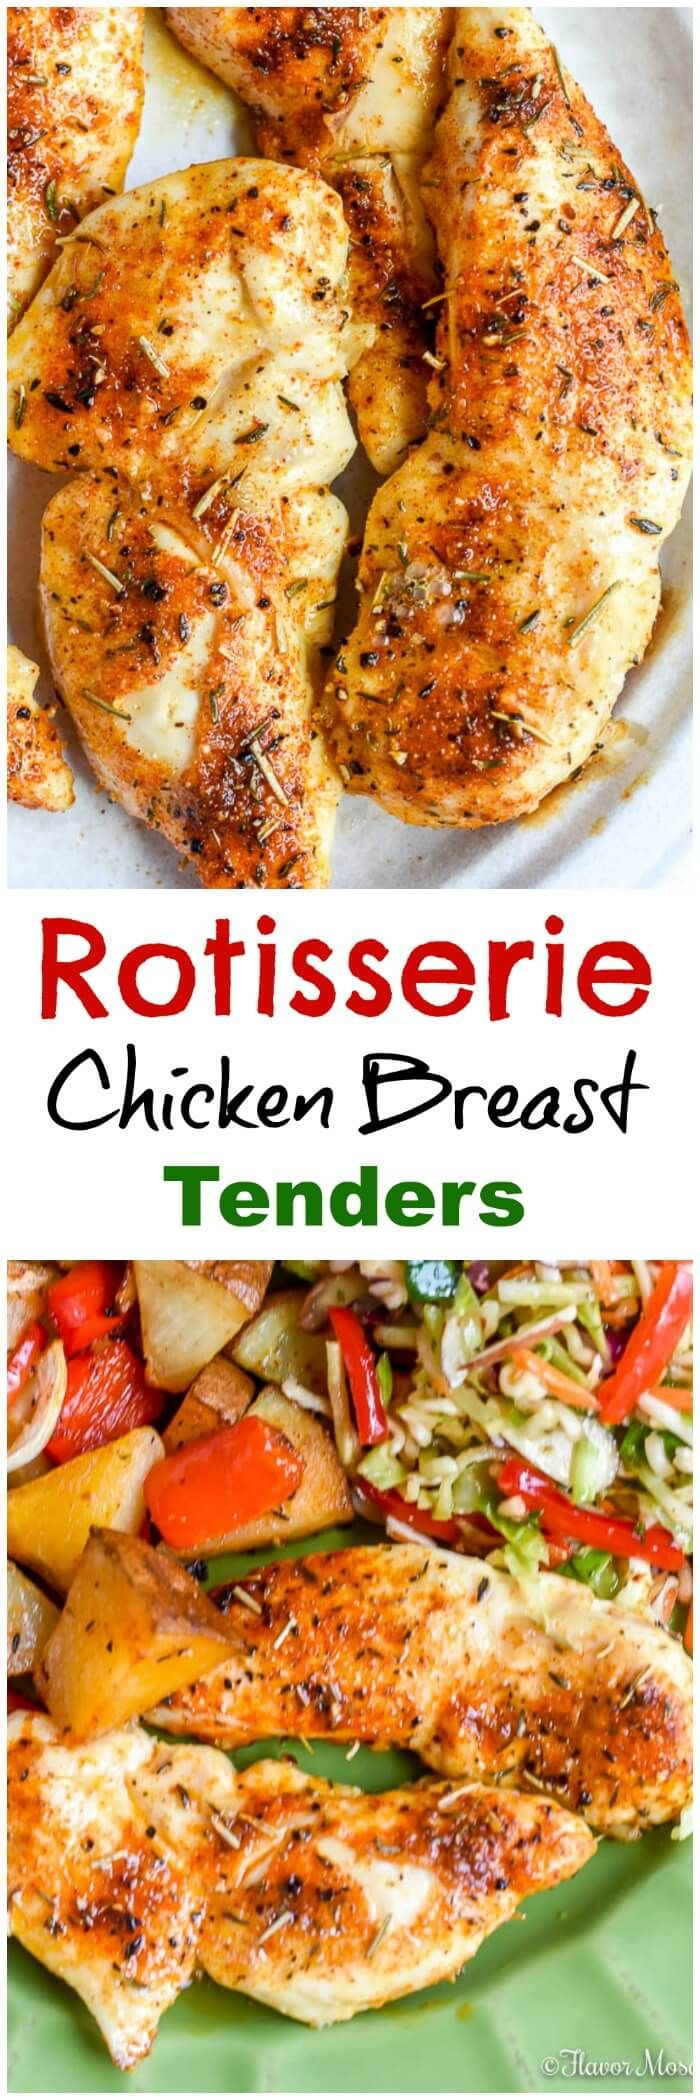 Rotisserie Chicken Breast Tenders are baked with a Rotisserie Chicken rub or Seasoning that make these moist, juicy chicken tenders flavorful and delicious! via @flavormosaic